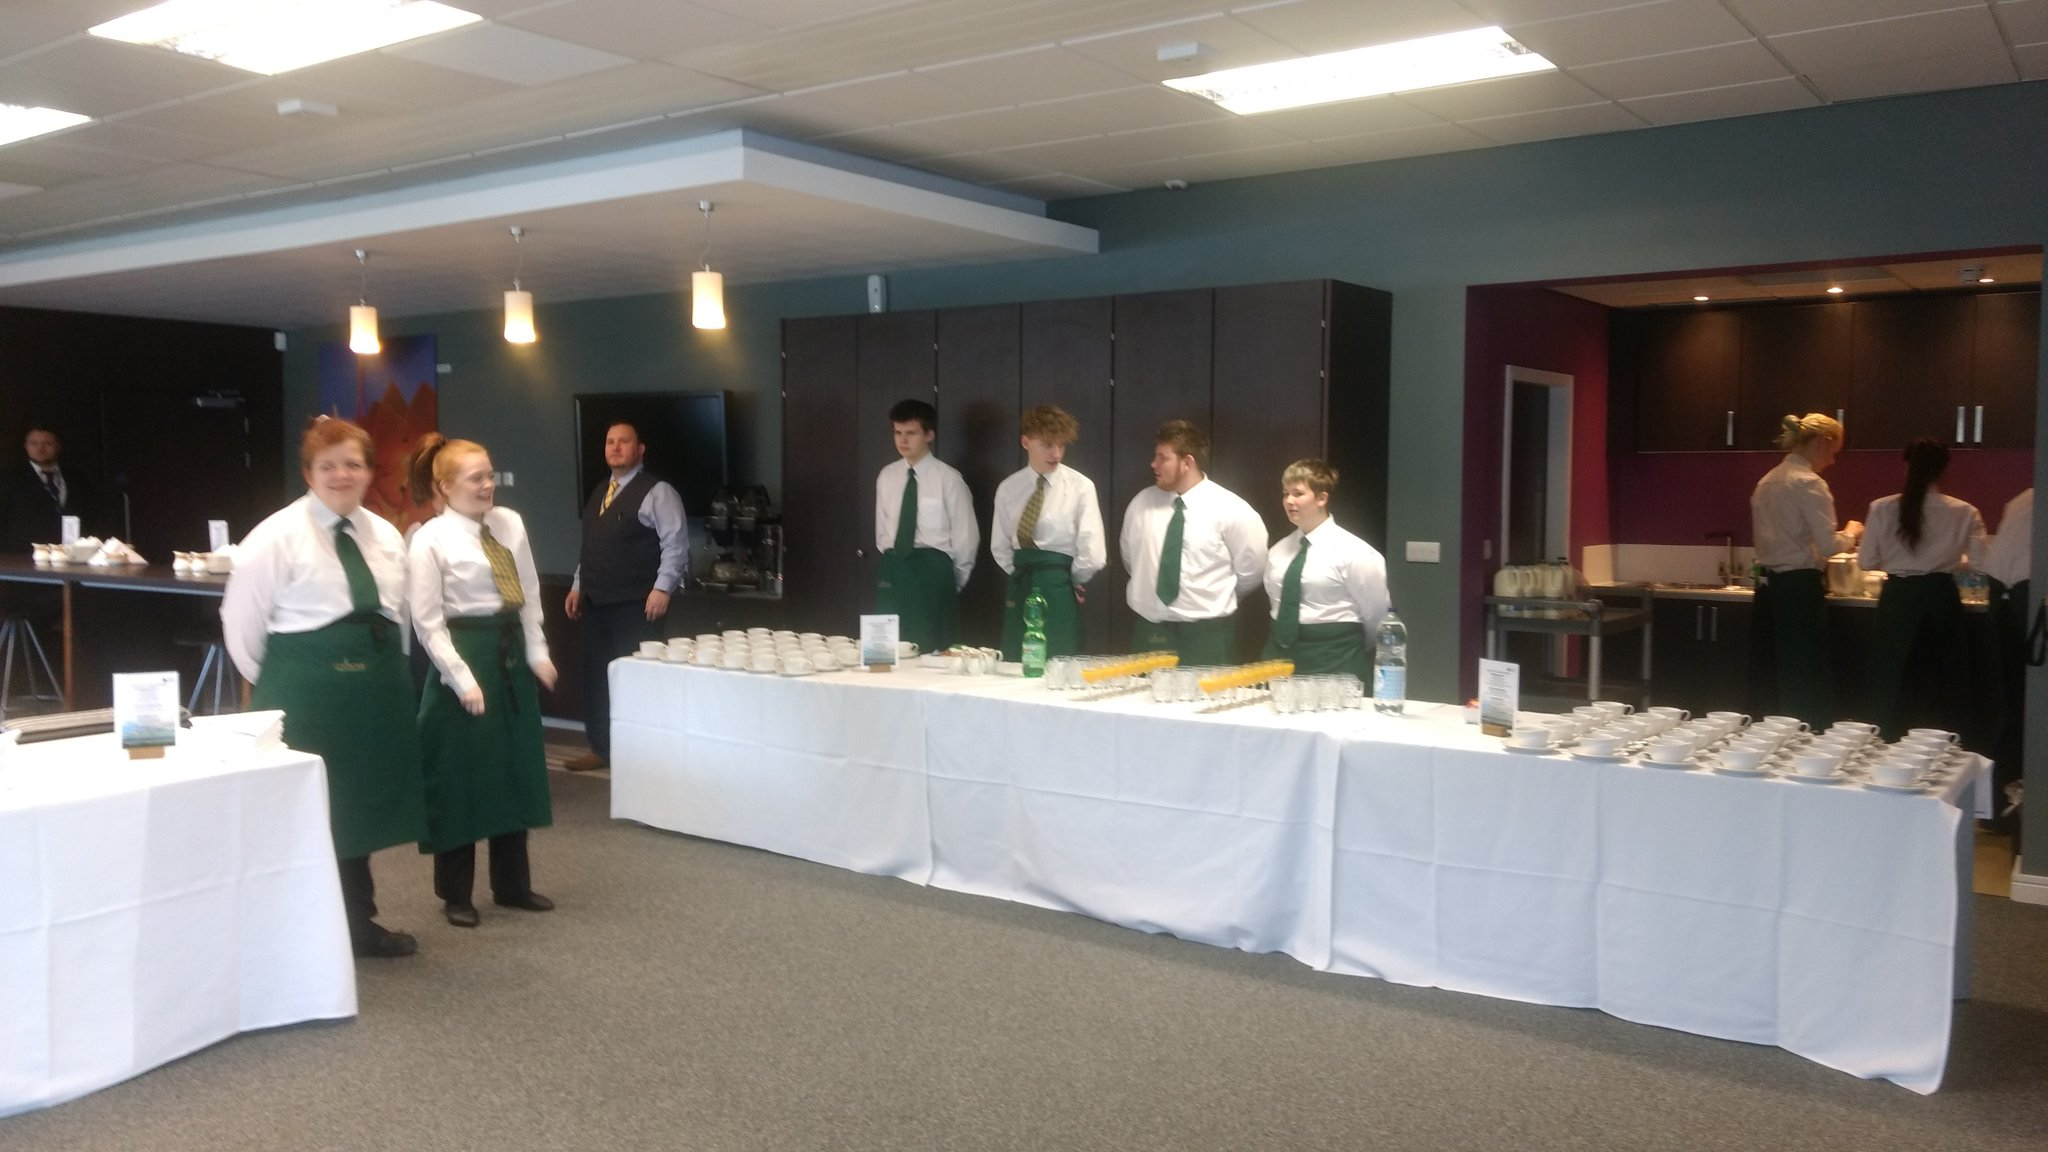 Our Hospitality students busy setting up for the #BayGateway opening. https://t.co/nrmHEkk86k